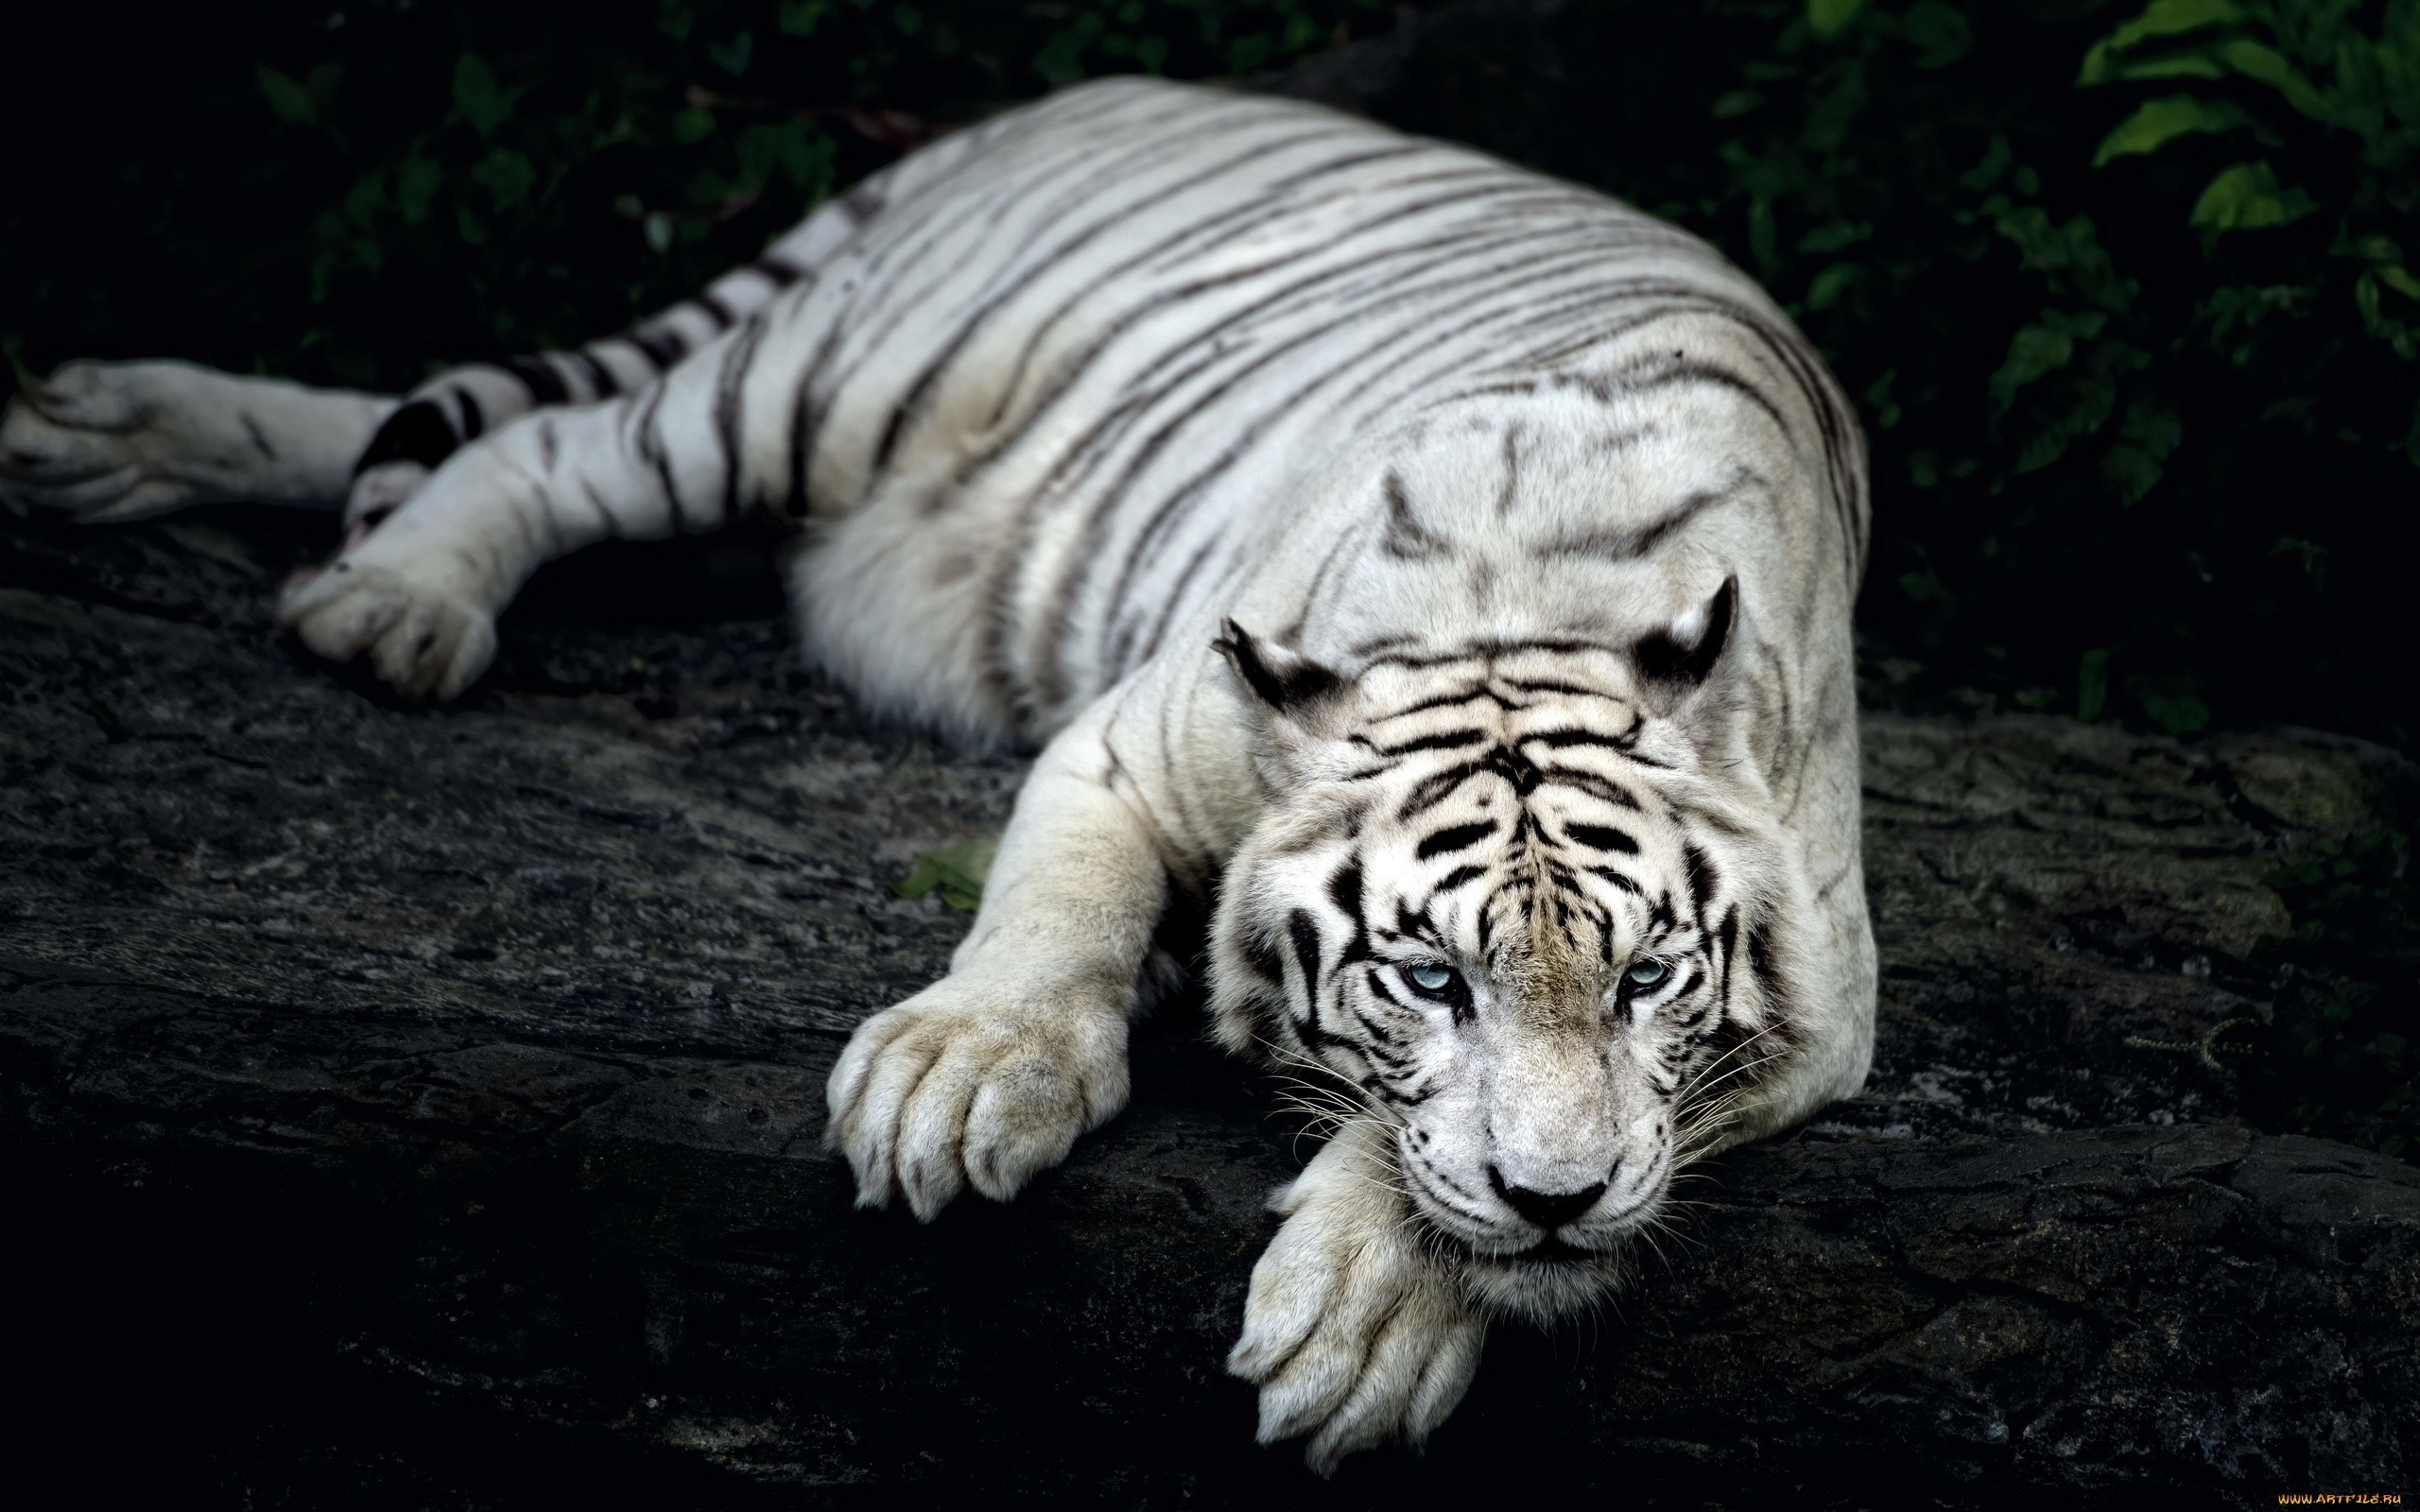 white tiger wallpaper wallpapers for free download about (3,203